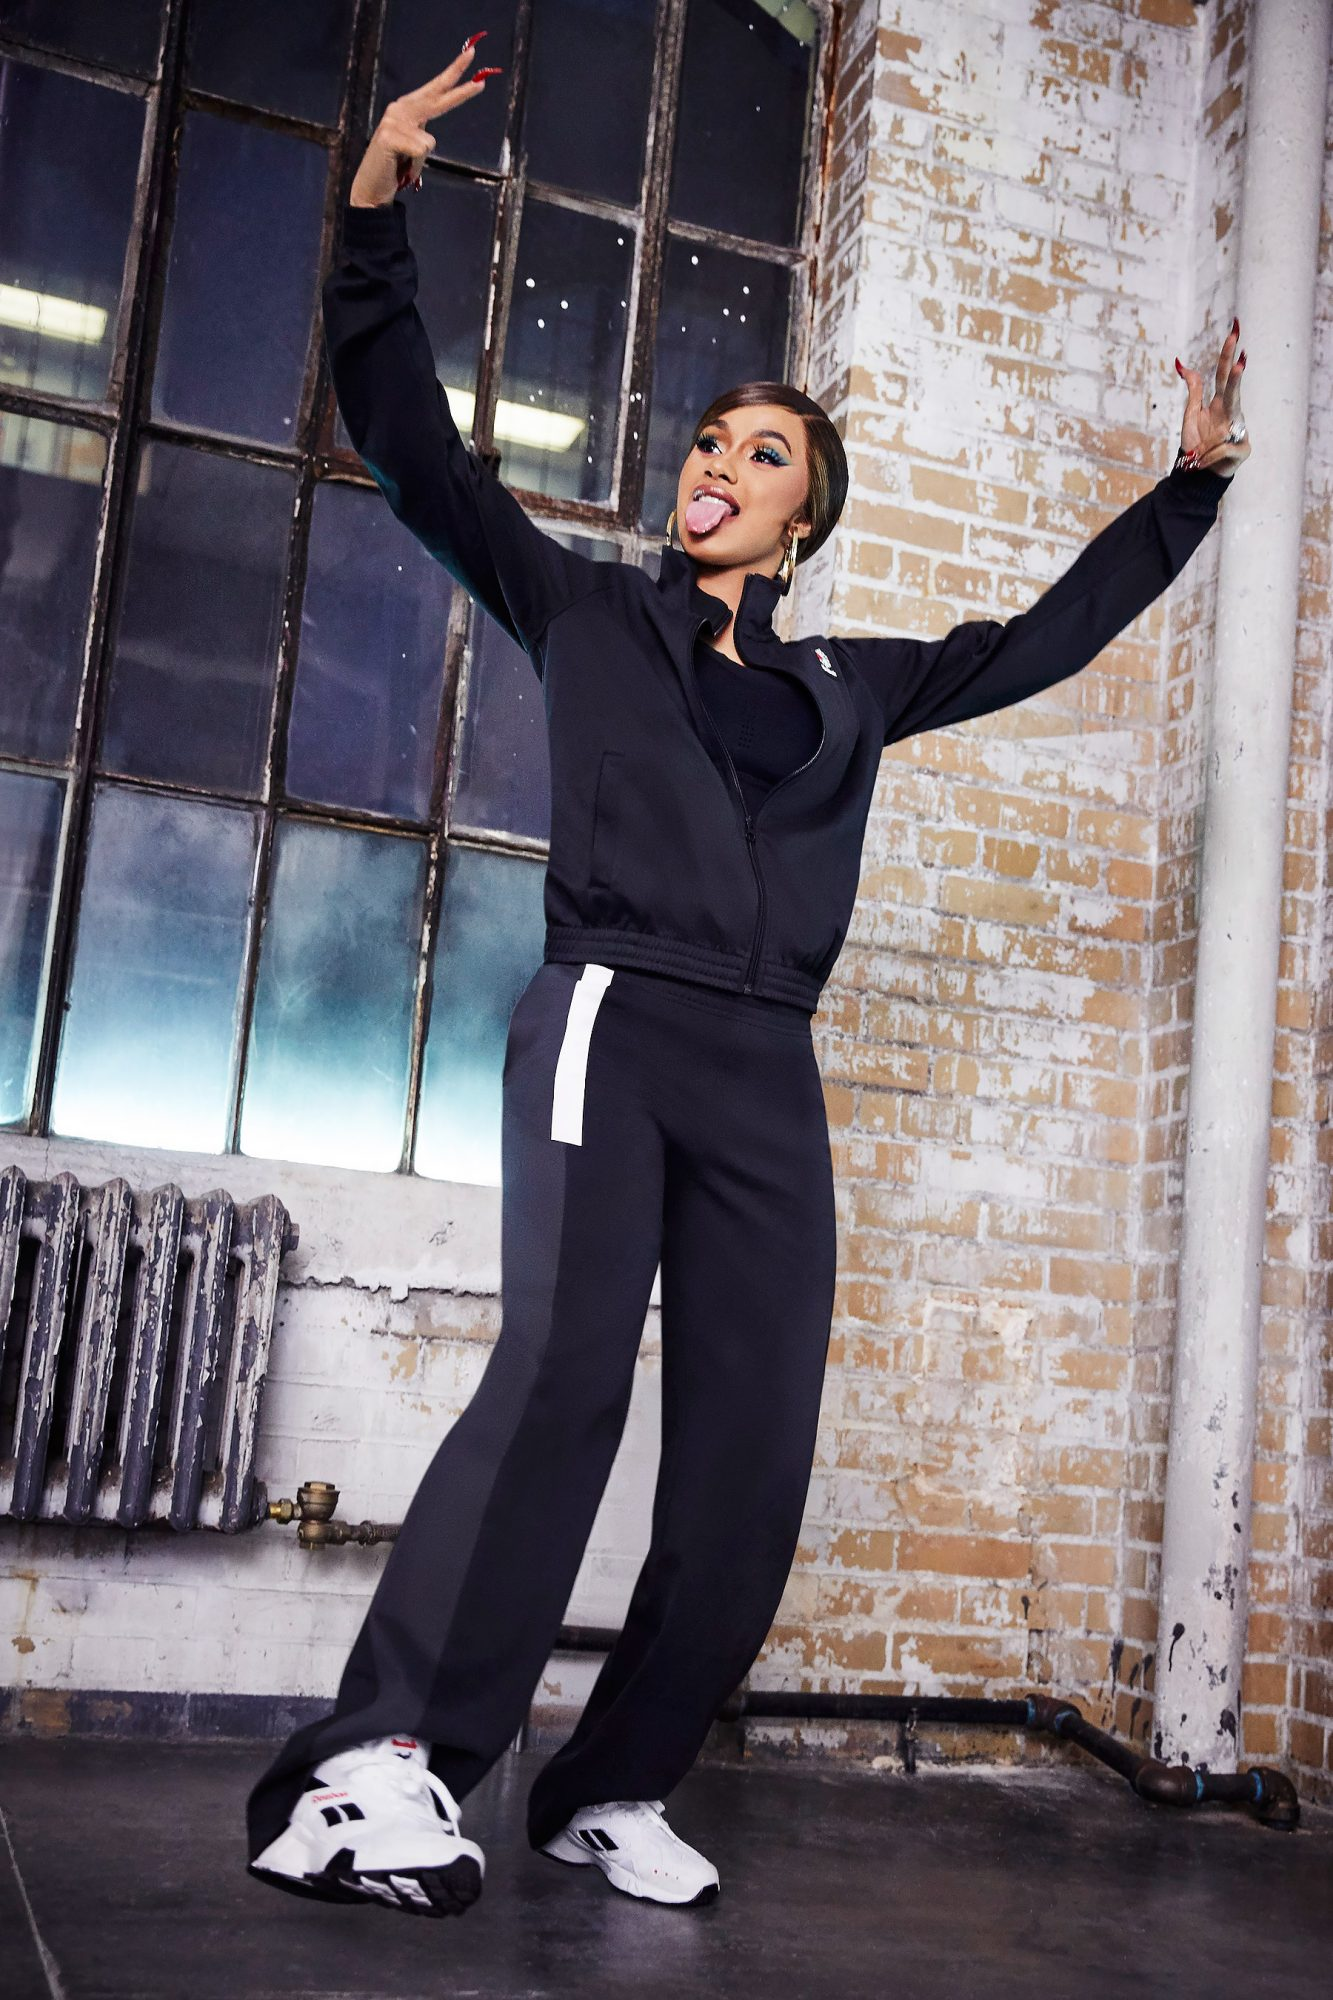 Cardi B has got swagger in a new photoshoot for Reebok Aztrek collaboration